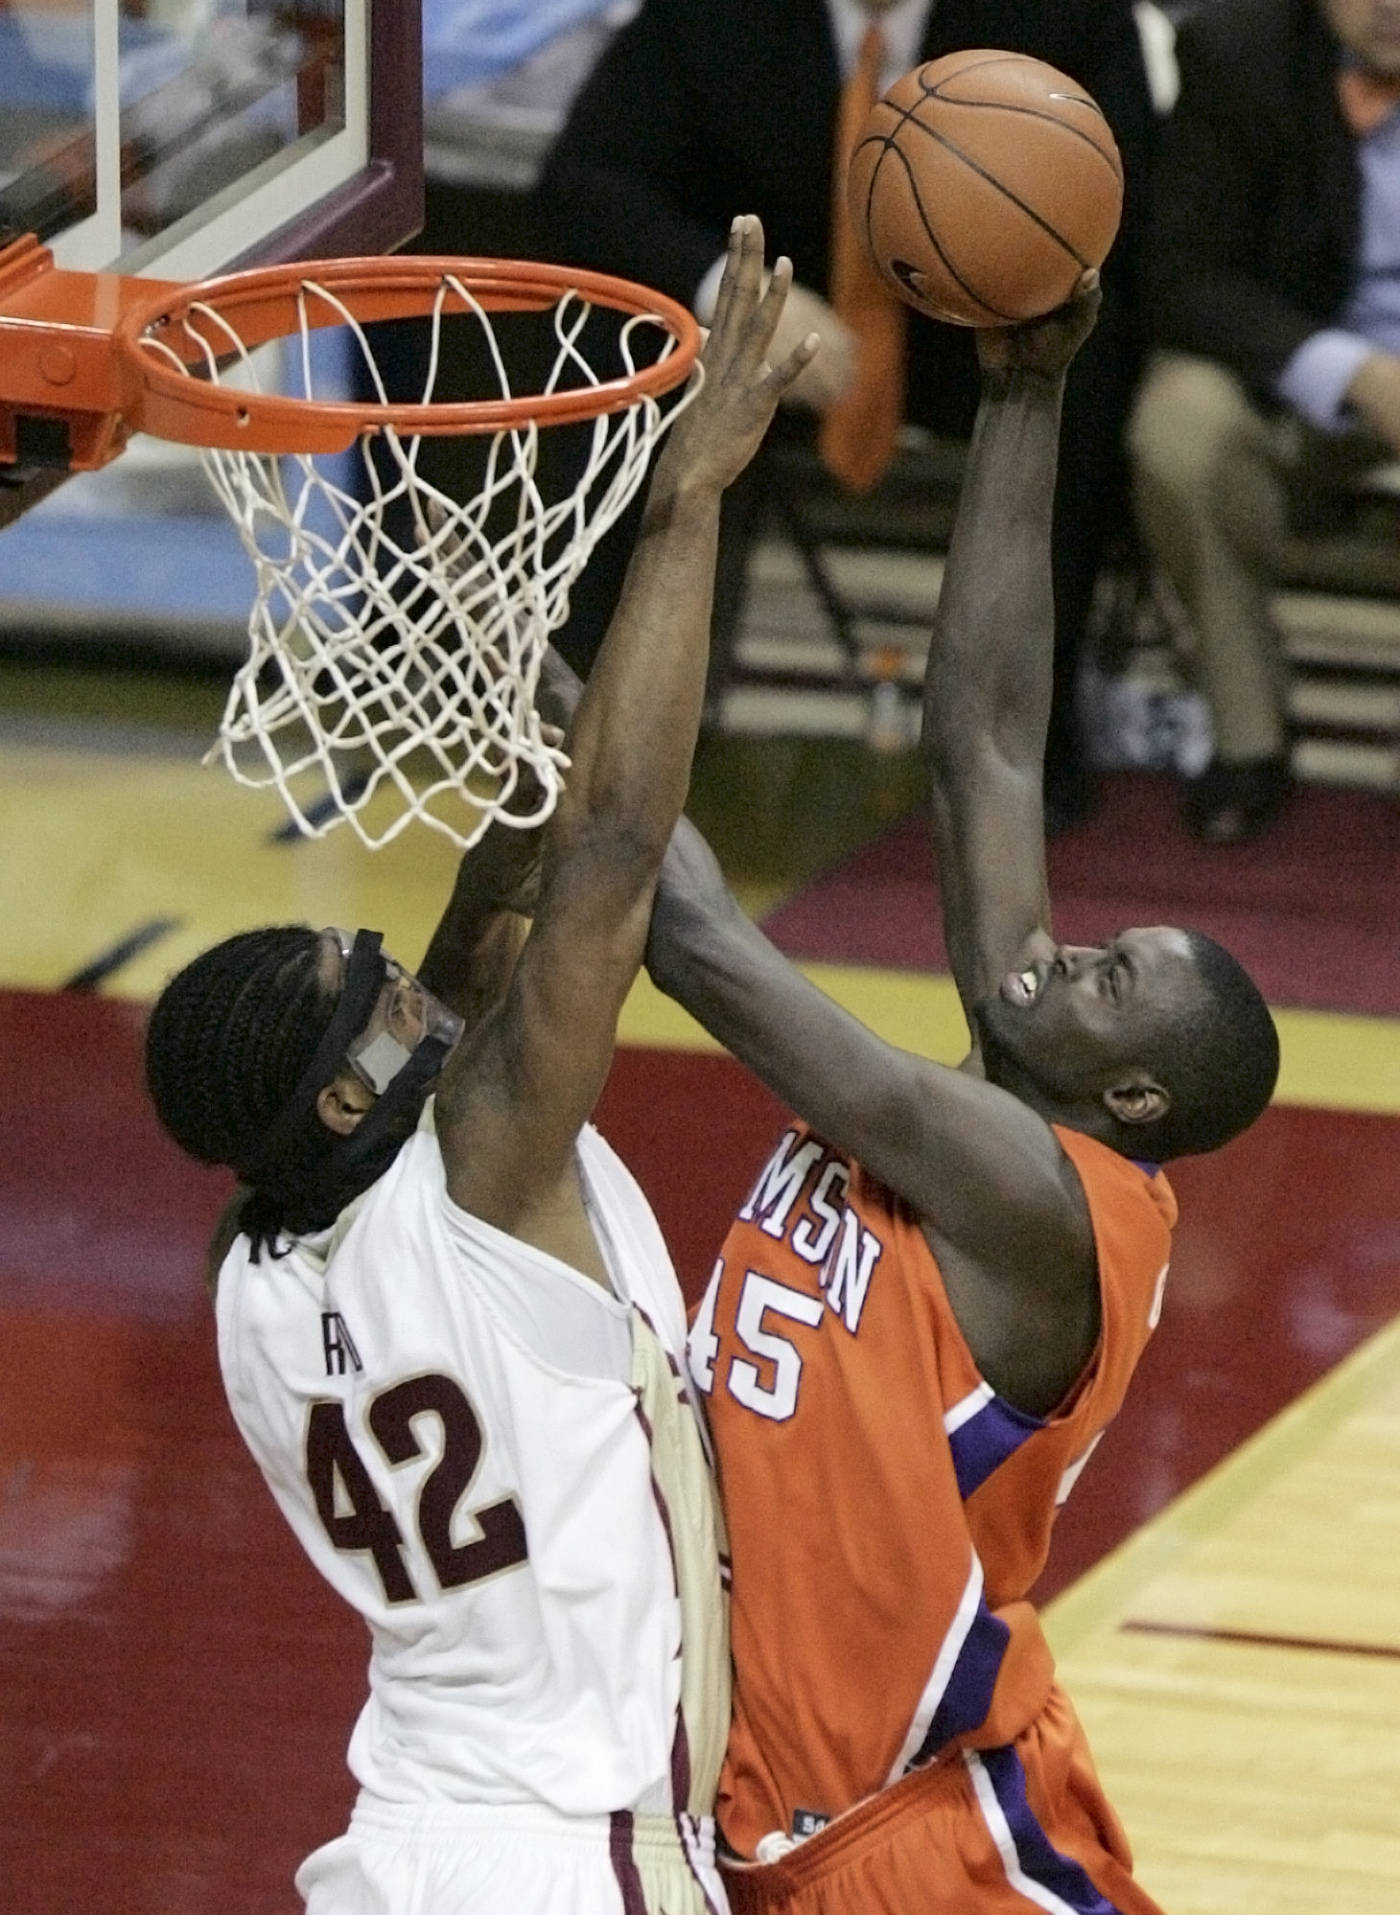 Clemson's Jerai Grant, right, is fouled by Florida State's Ryan Reid while driving to the basket in the second half of Florida State's 64-55 win in a basketball game Tuesday, Feb. 19, 2008, in Tallahassee, Fla. (AP Photo/Steve Cannon)